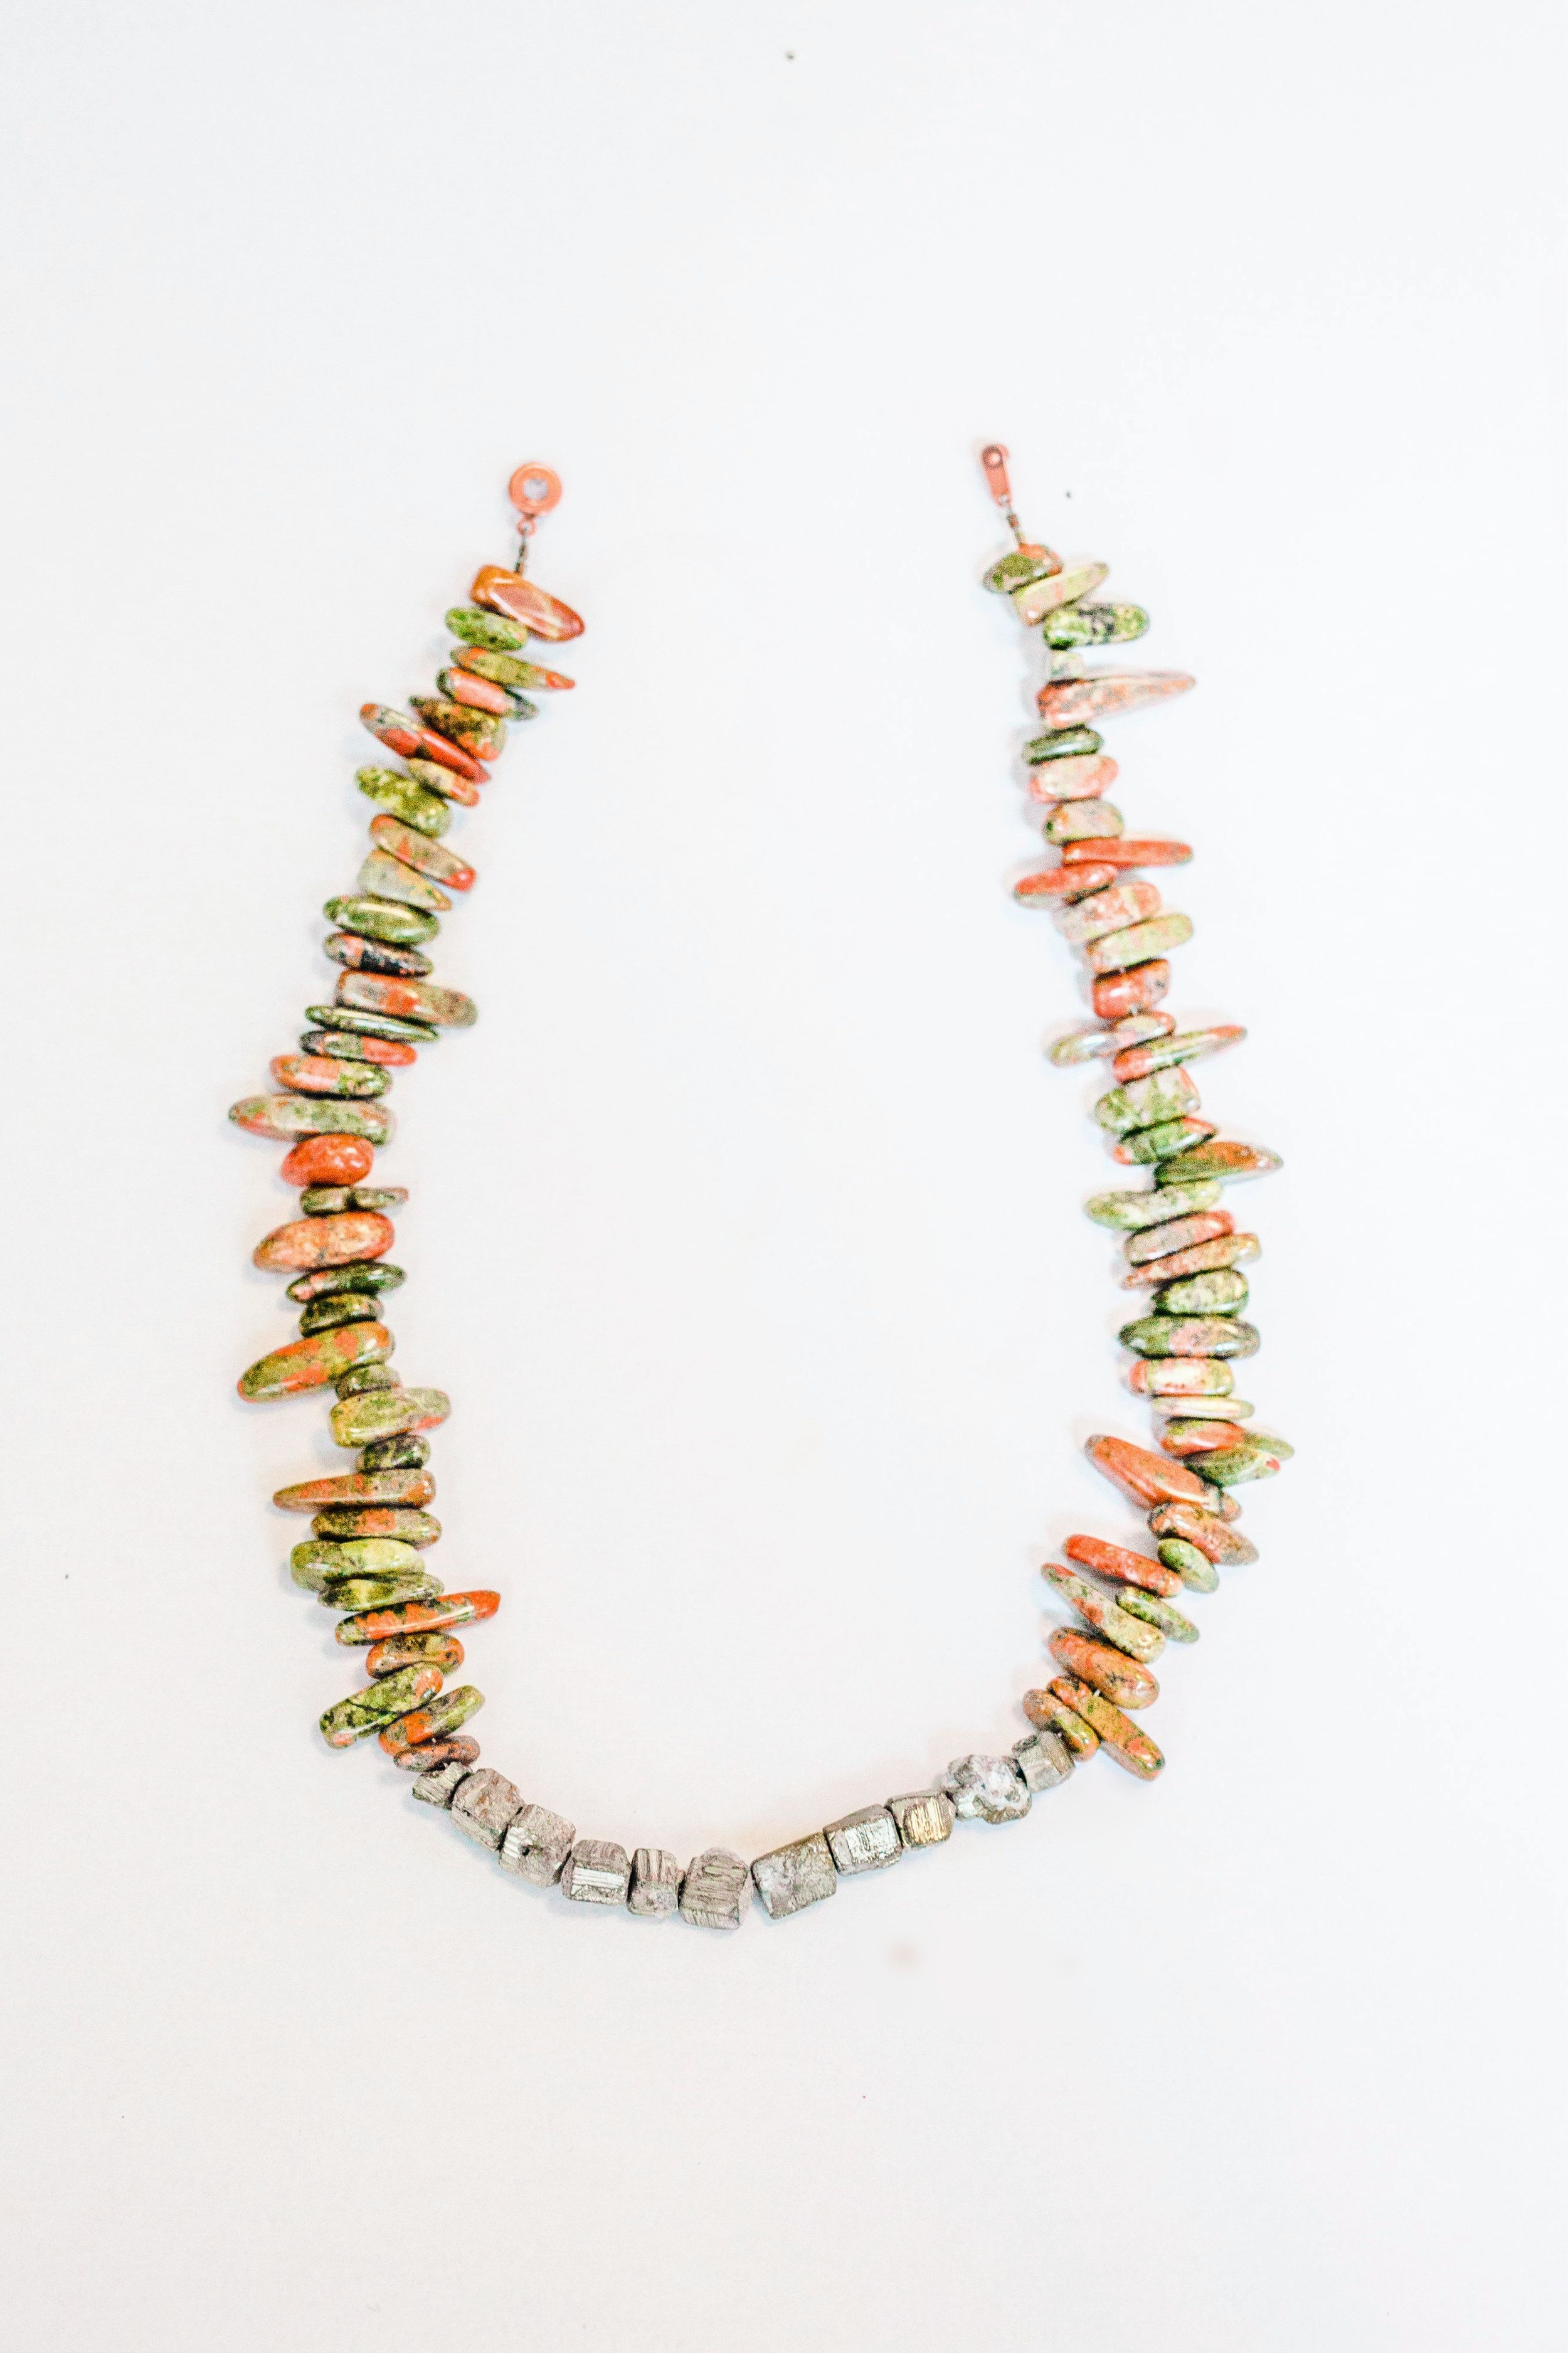 The Azalea Road Necklace: this unakite tusk stone necklace features 11 raw unpolished pyrite beads in the center and has an antique brass button clasp.